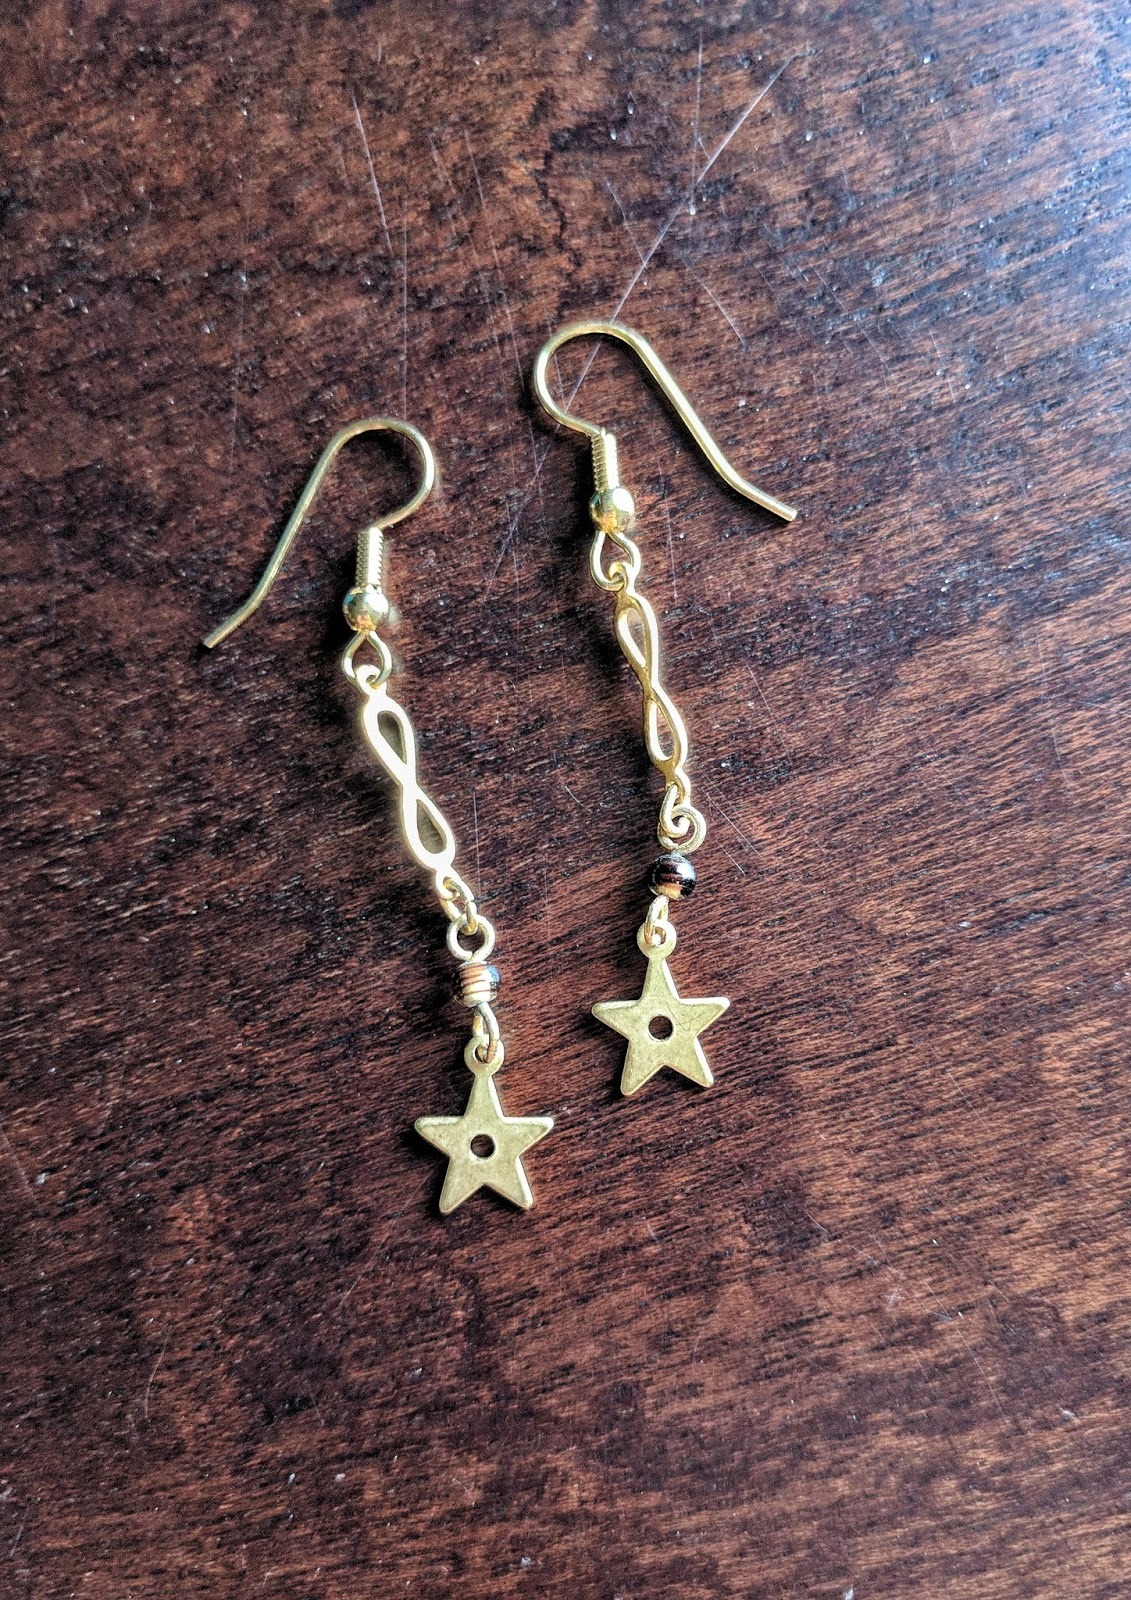 Vintage star infinity earrings three monkeys Portland or Oregon Nob Hill Alphabet District earring design jewelry